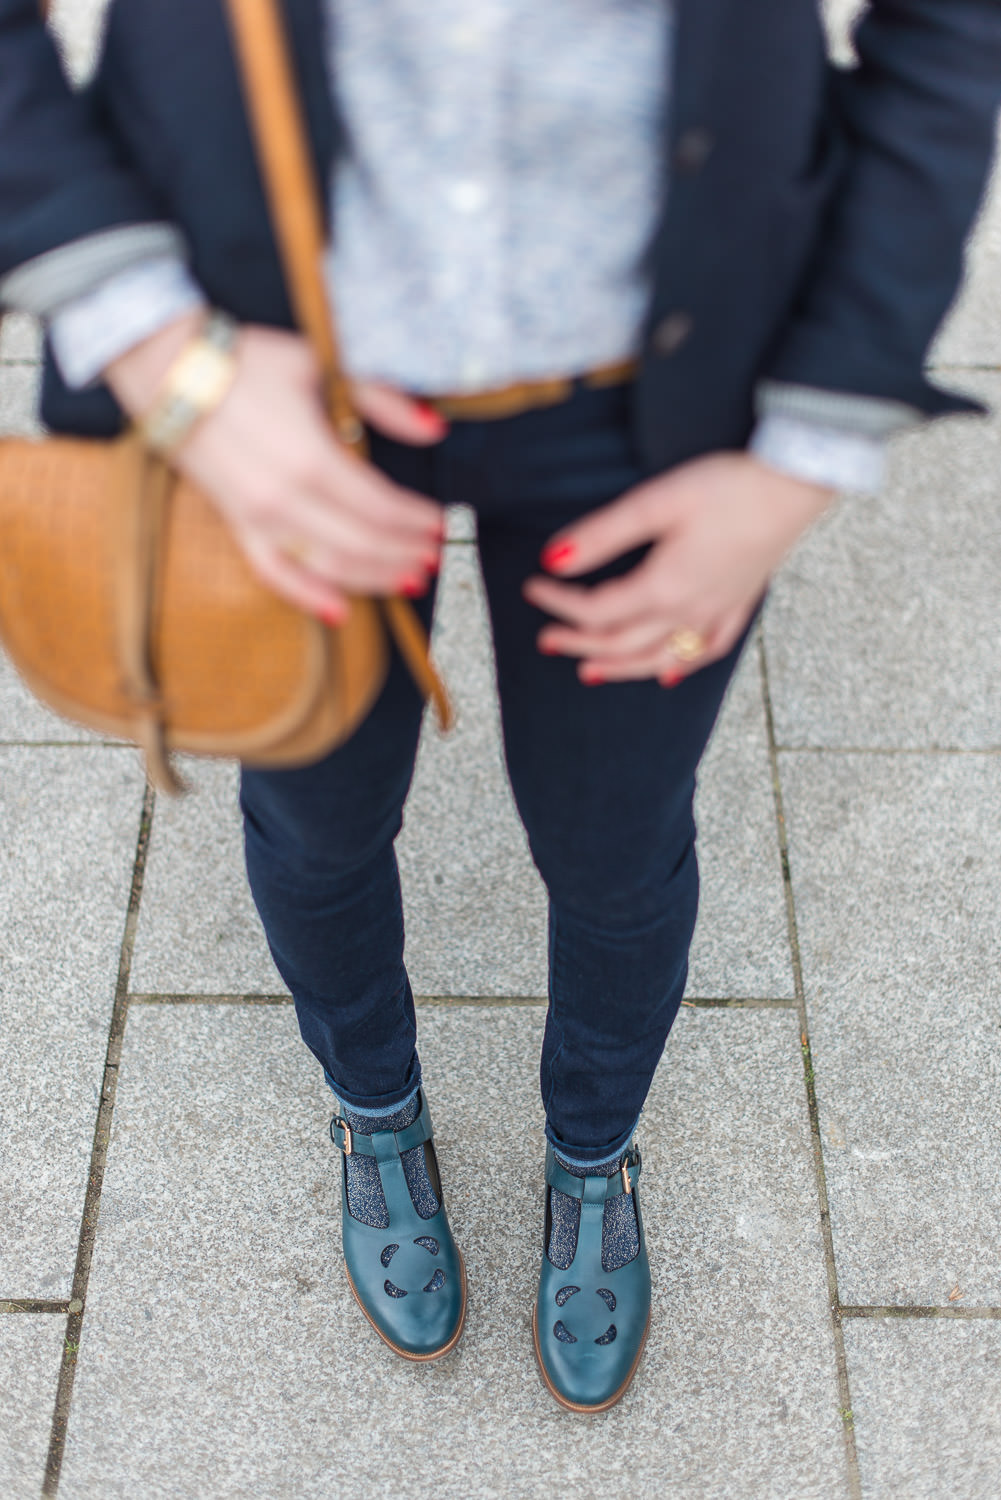 Blog-mode-Mode-And-The-City-looks-collaboration-clarks-orla-kiely-2-9